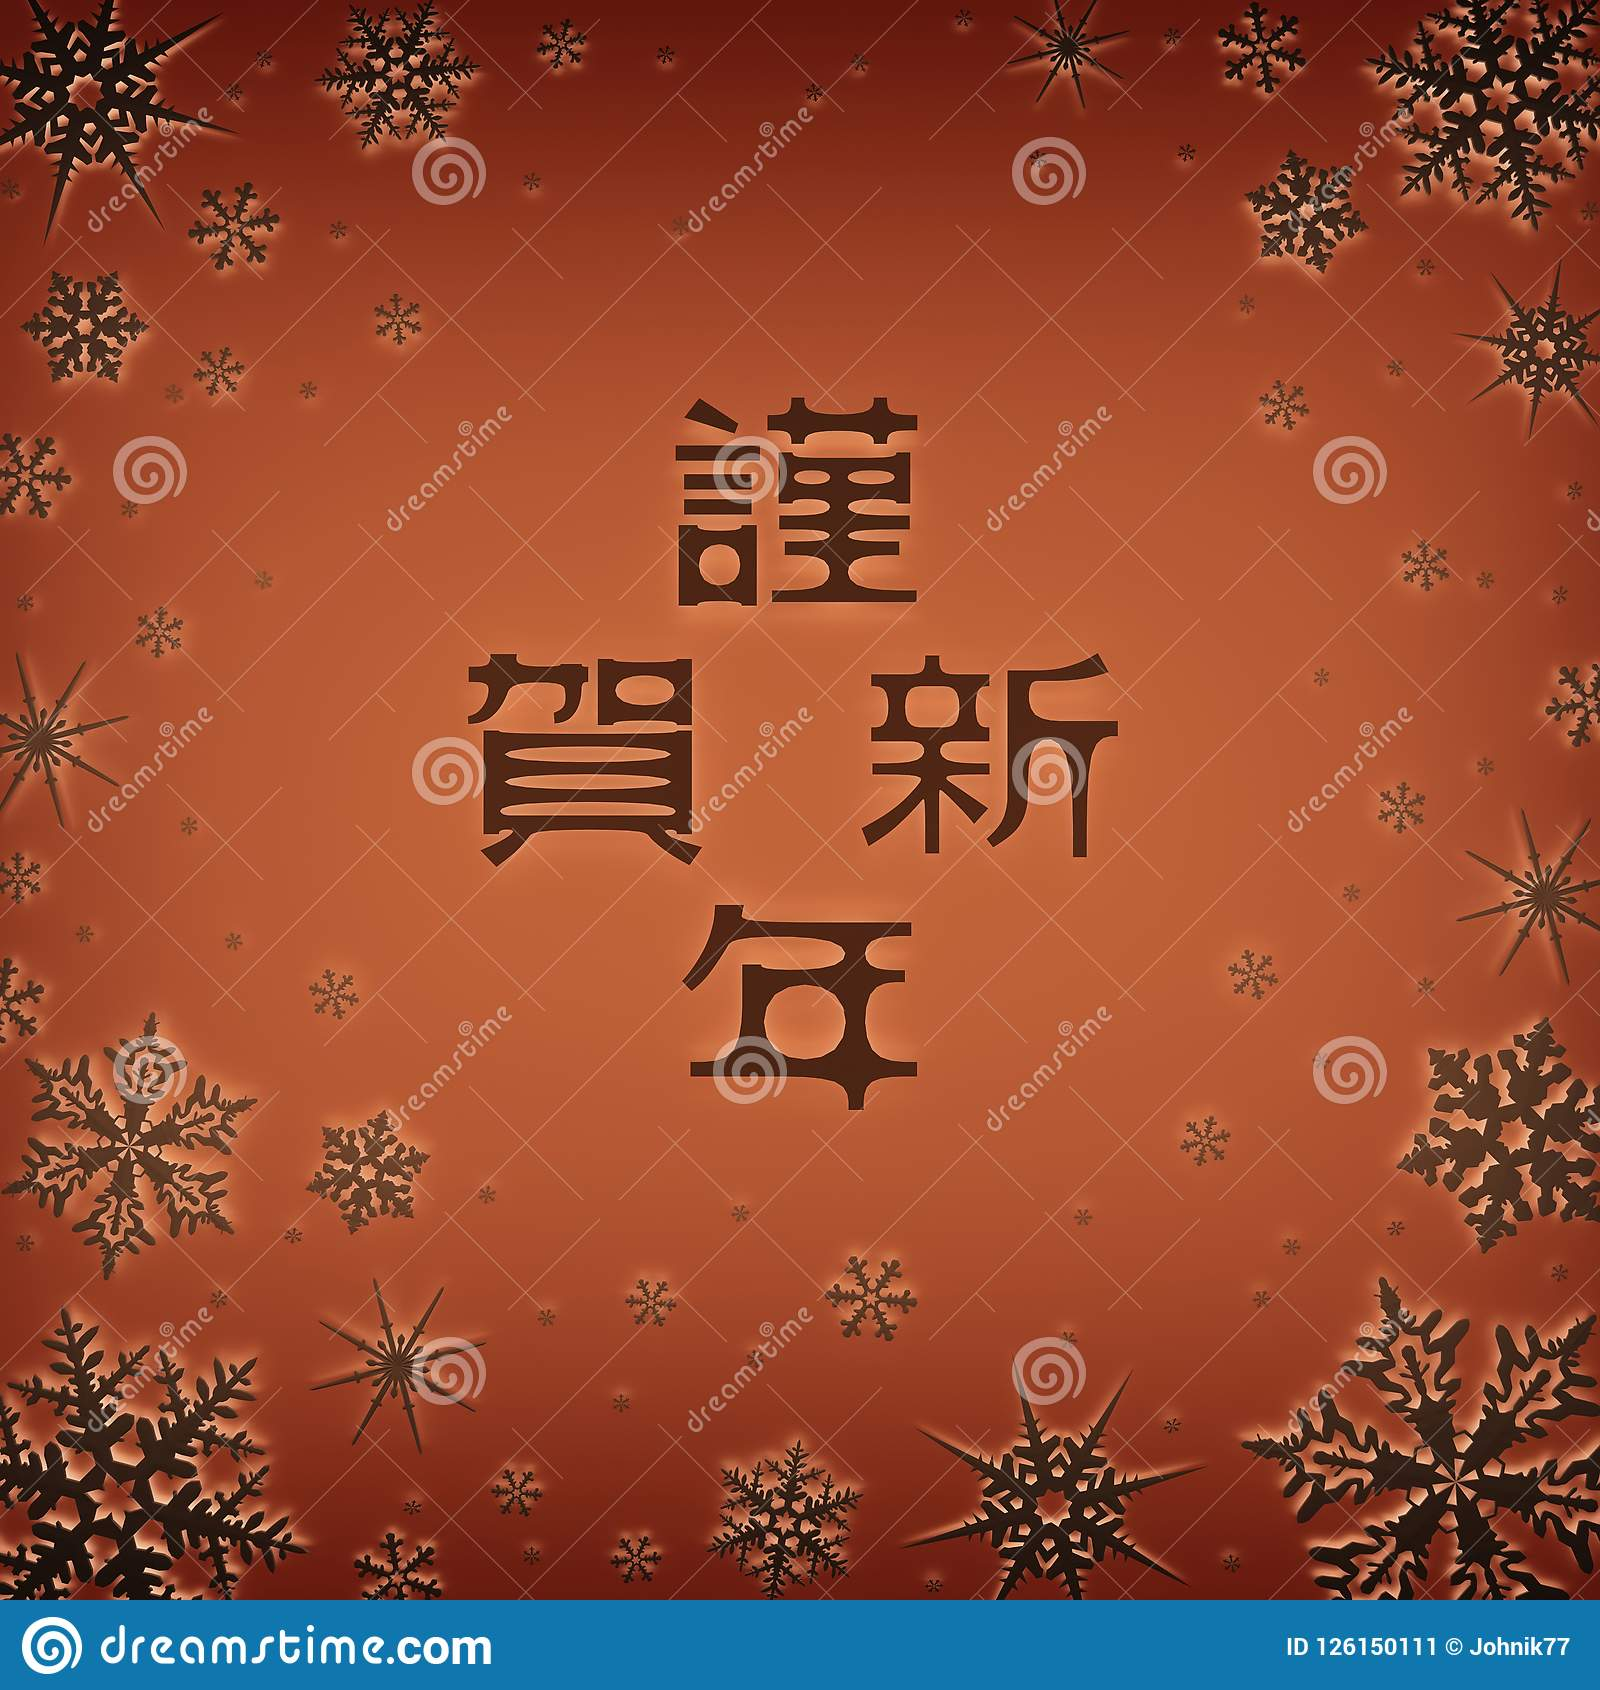 Christmas Card With New Year Greetings In Japanese Decorated With